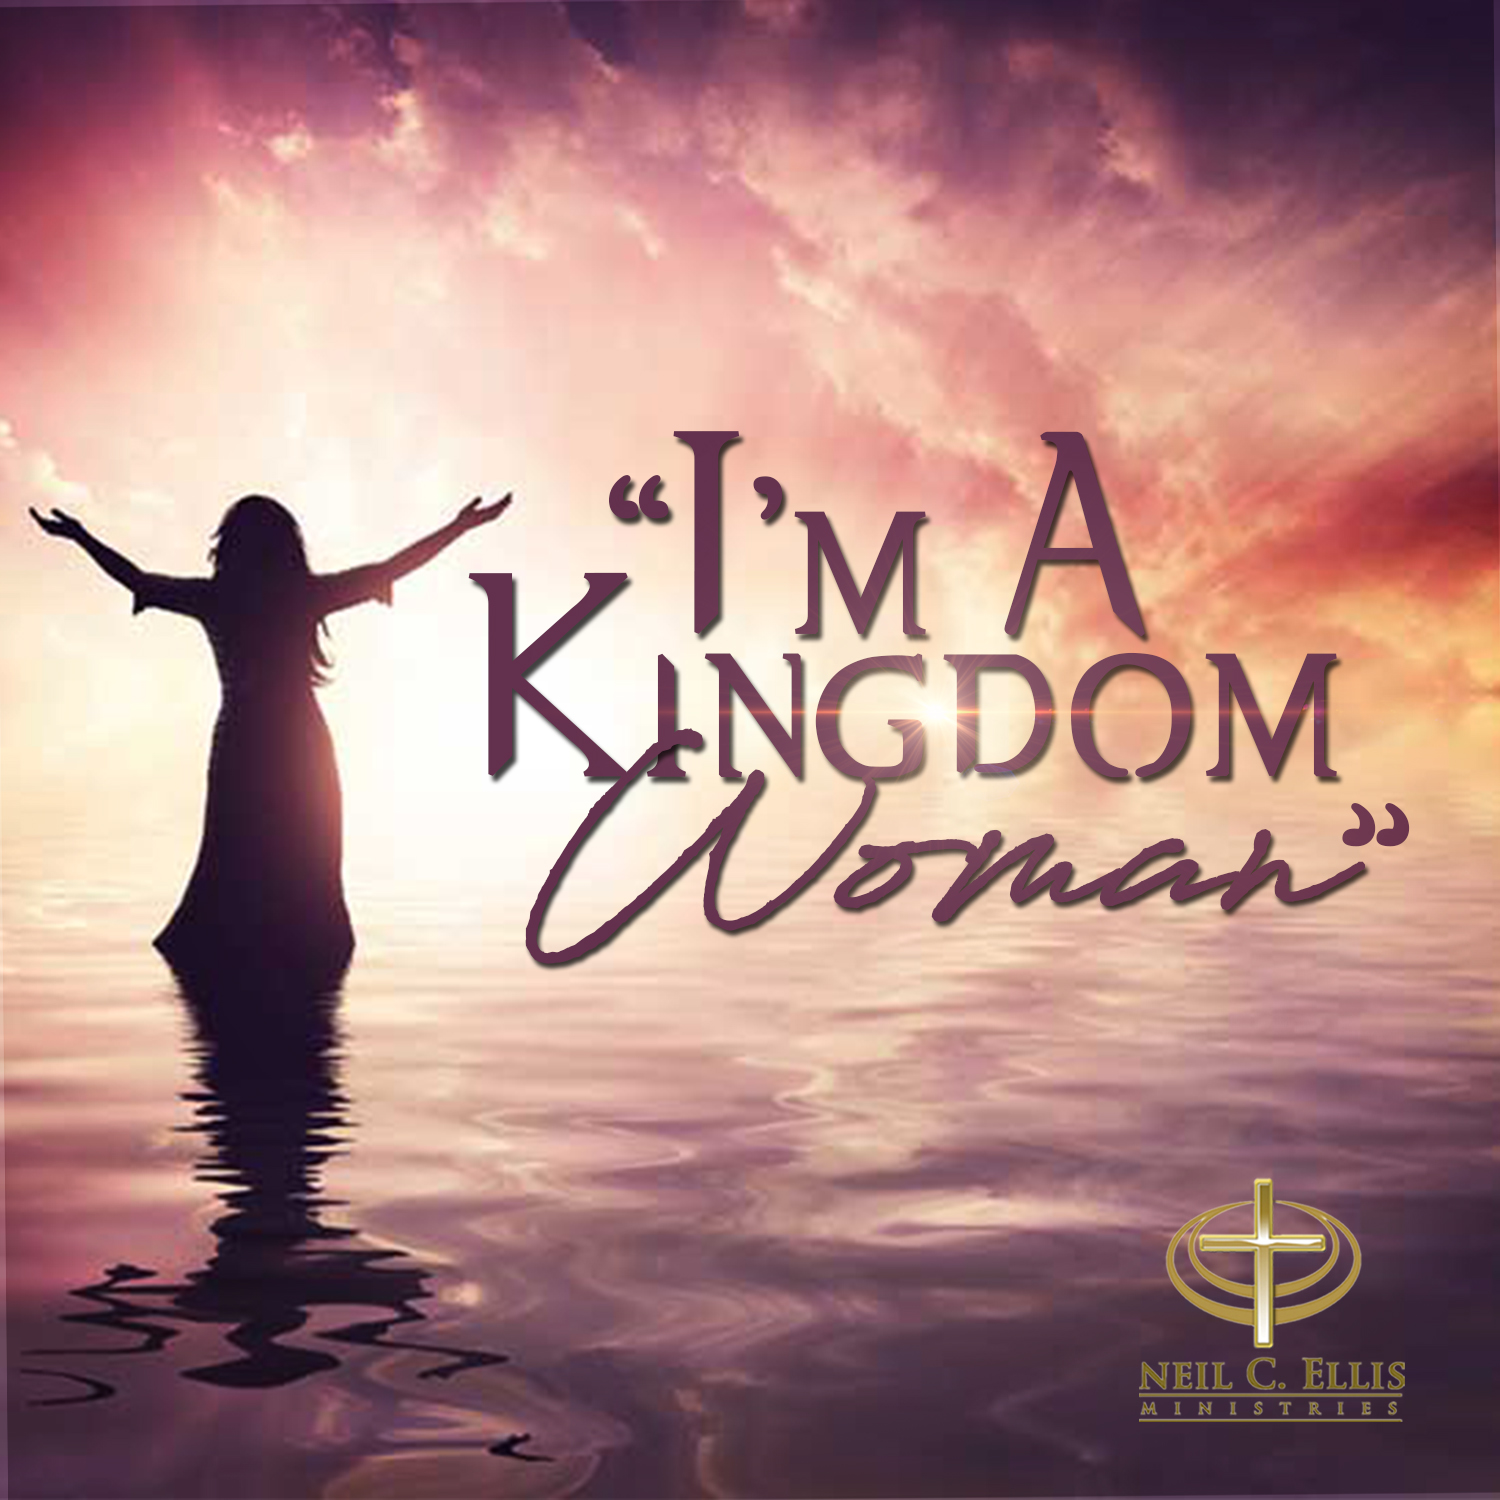 kingdom-woman-square